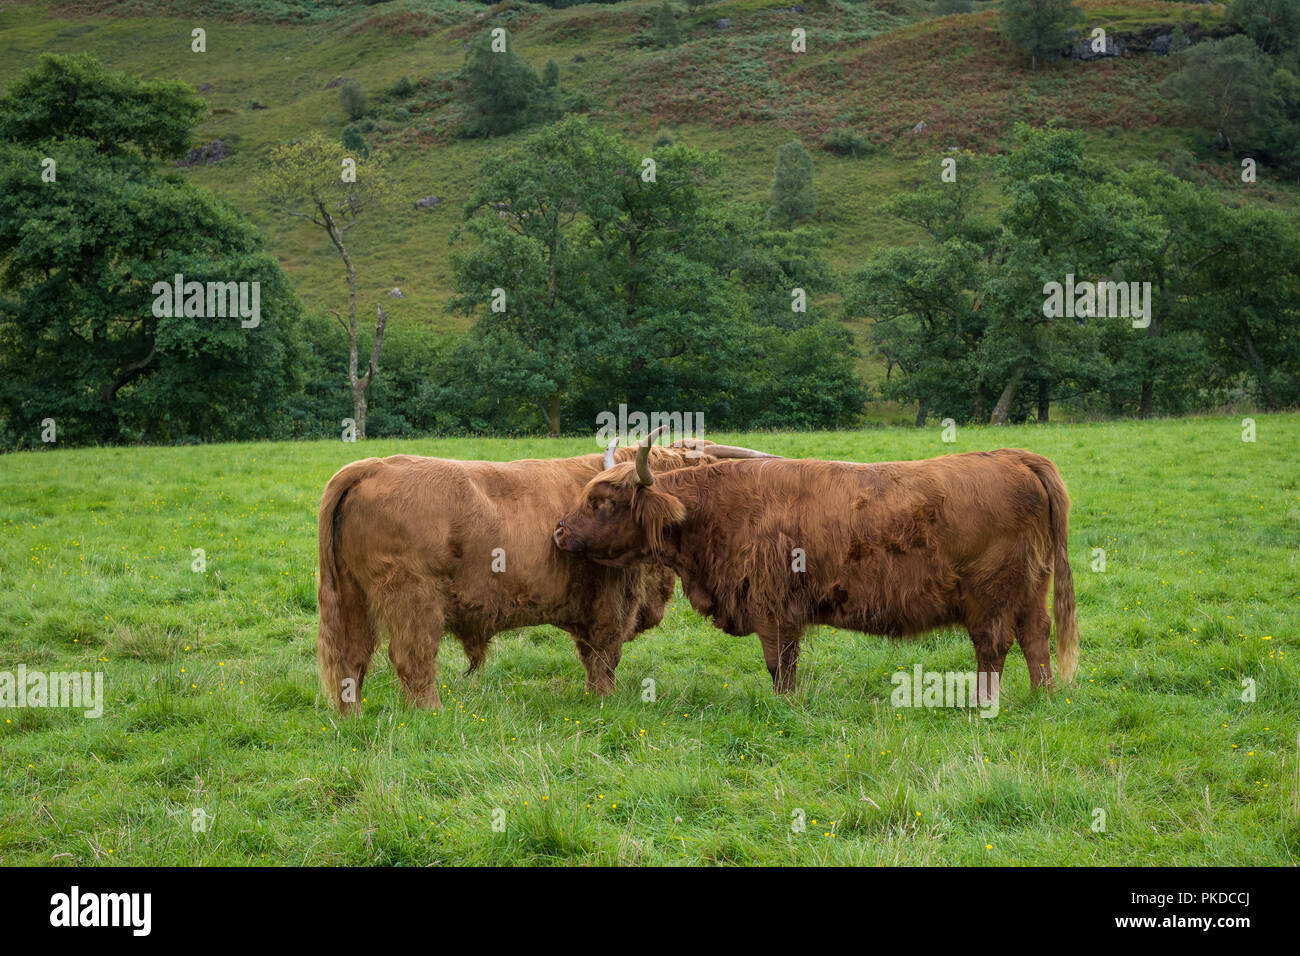 Cow and bull, Scottish Highland cattle, Ben Nevis, Scottish Highlands, Scotland, UK - Stock Image